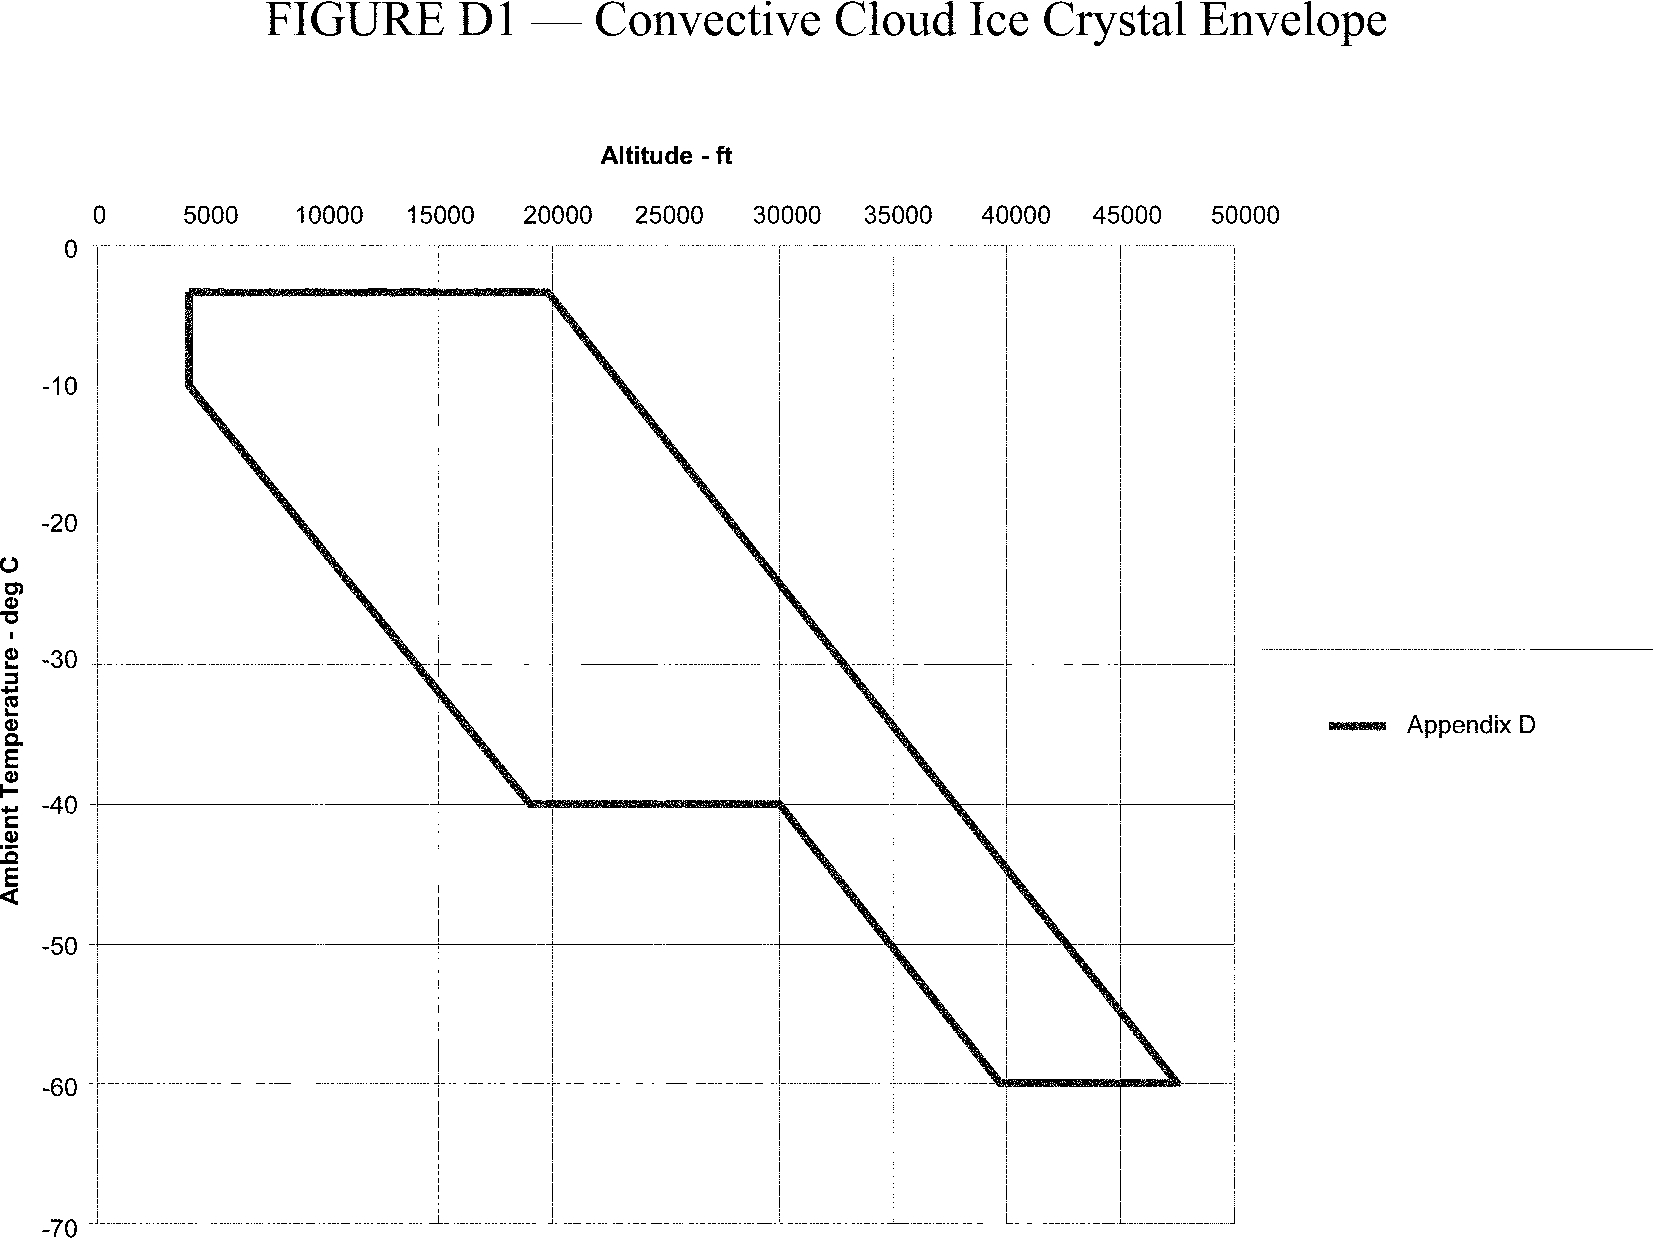 Graphic of The ice crystal icing envelope is depicted in Figure D1 of this Appendix.